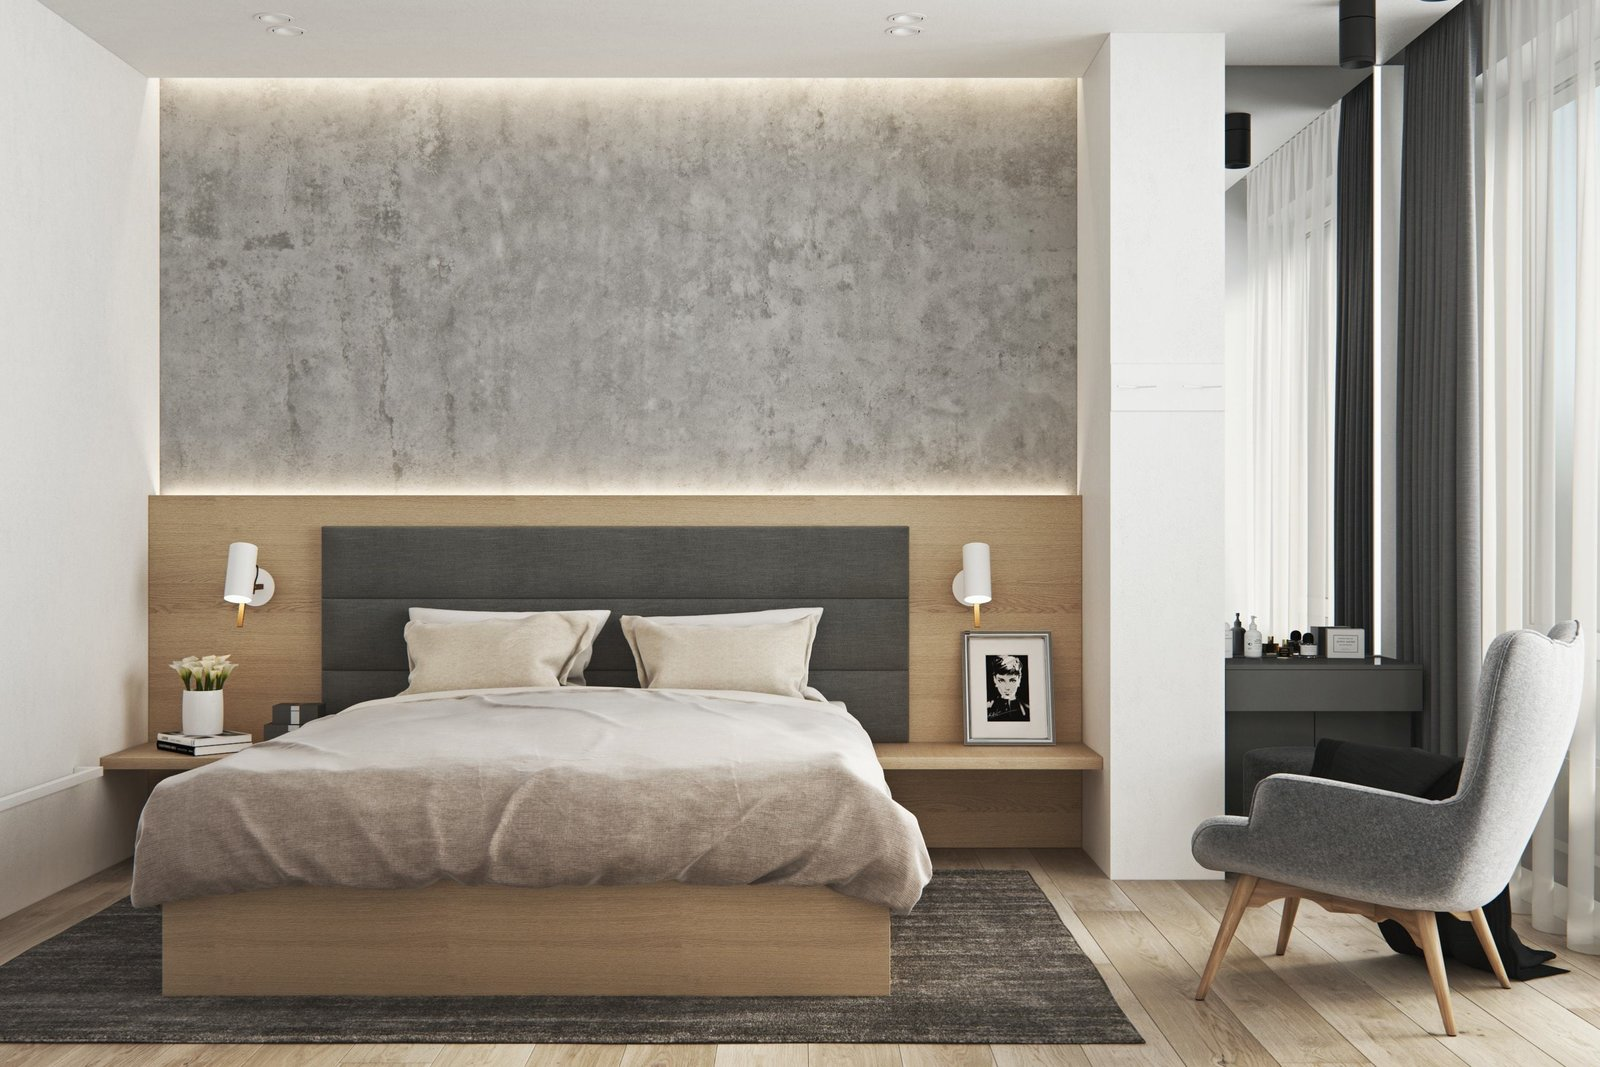 Bedroom, Bed, and Chair  Interior Design Project in Contemporary Style by Geometrium